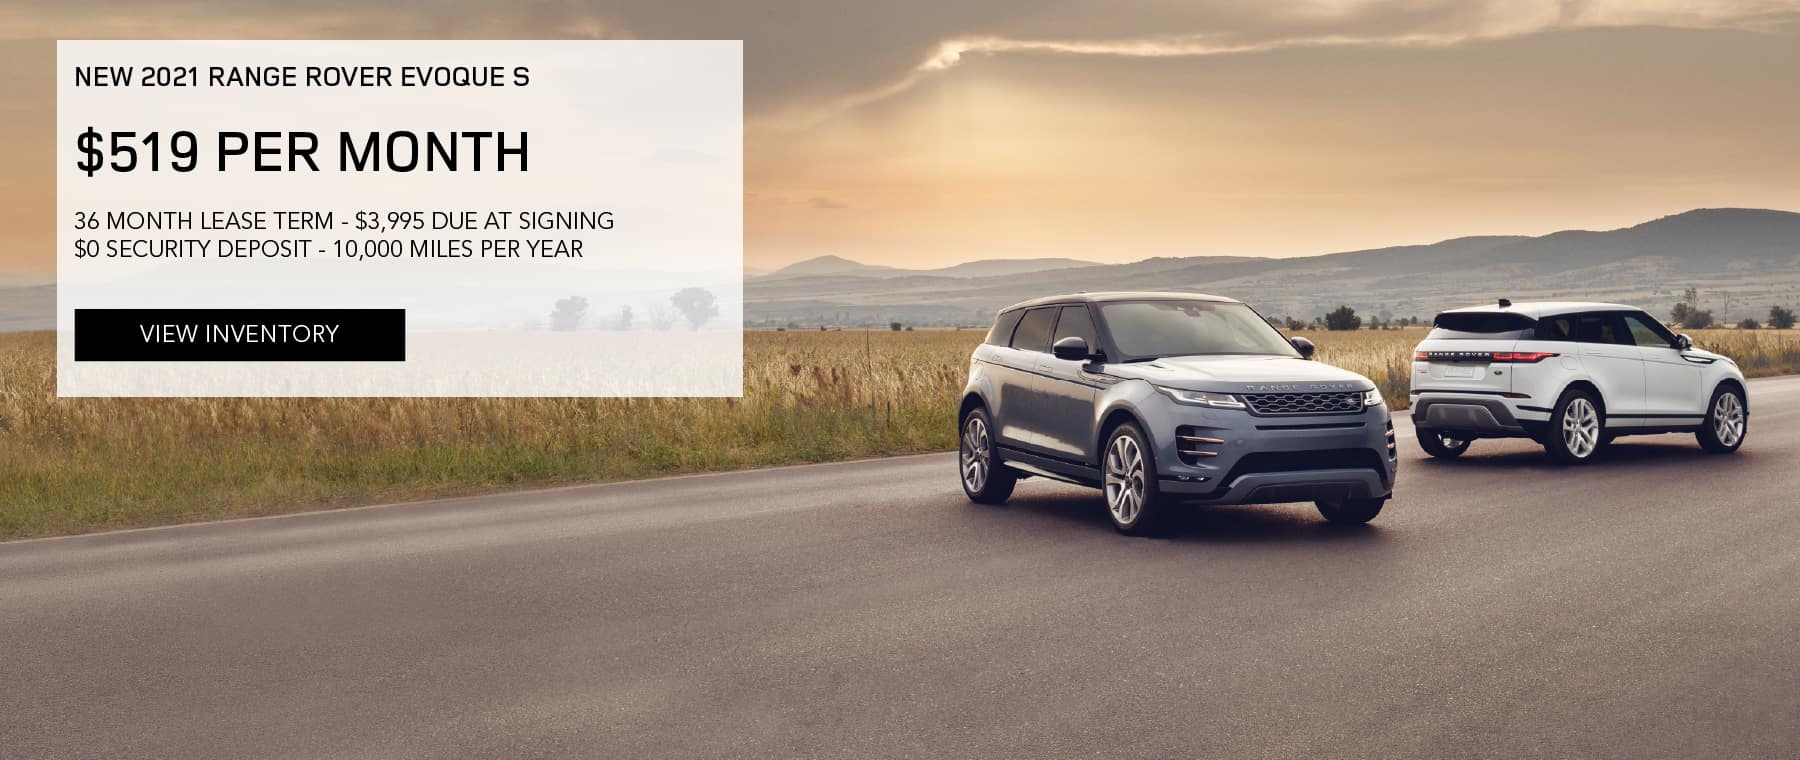 NEW 2021 RANGE ROVER EVOQUE S. $519 PER MONTH. 36 MONTH LEASE TERM. $3,995 CASH DUE AT SIGNING. $0 SECURITY DEPOSIT. 10,000 MILES PER YEAR. EXCLUDES RETAILER FEES, TAXES, TITLE AND REGISTRATION FEES, PROCESSING FEE AND ANY EMISSION TESTING CHARGE. OFFER ENDS 6/30/2021. VIEW INVENTORY. SILVER AND BLUE RANGE ROVER EVOQUE PARKED IN COUNTRYSIDE.